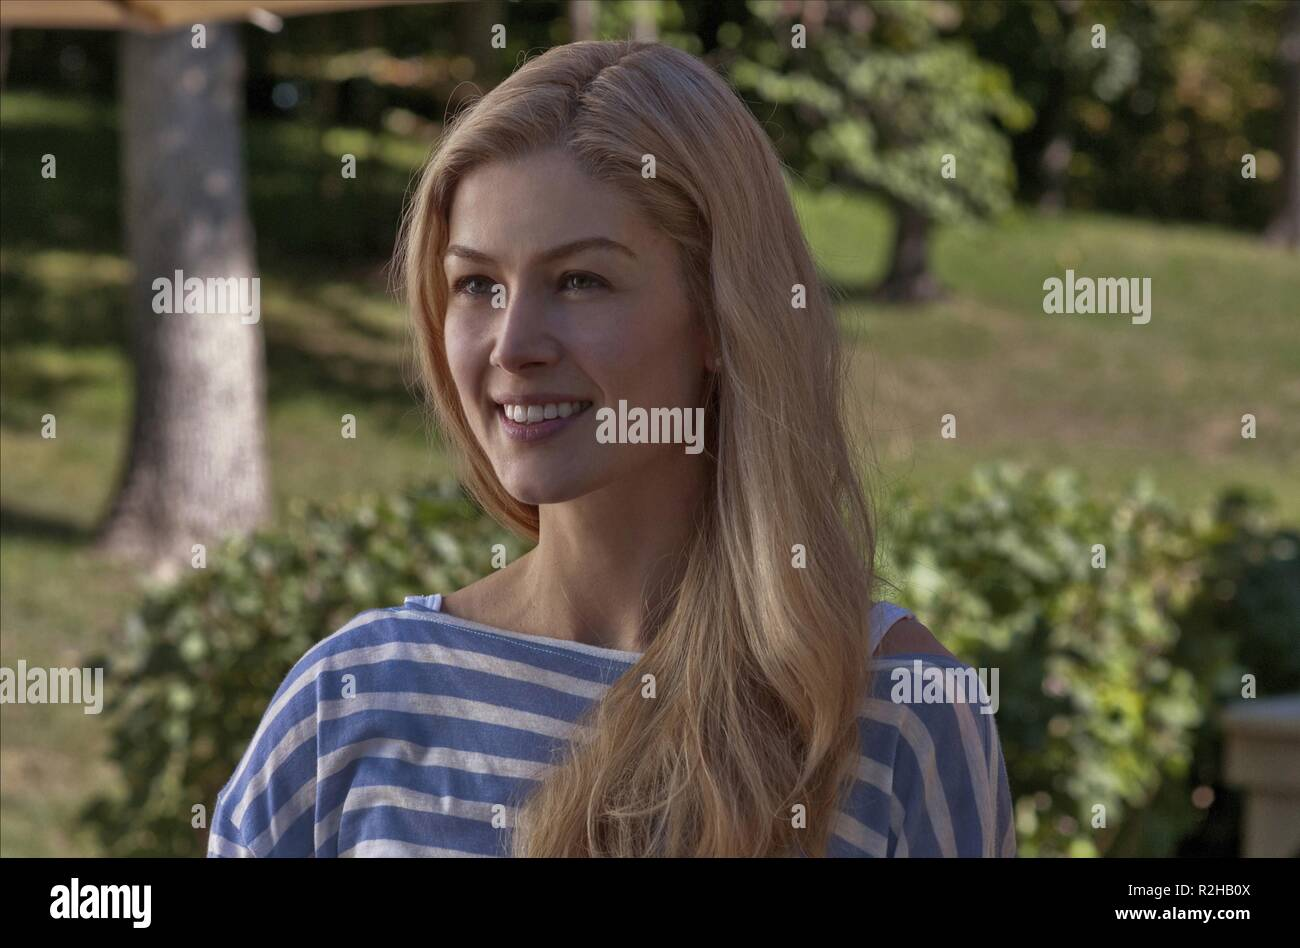 Gone Girl Year : 2014 USA Director : David Fincher Rosamund Pike - Stock Image